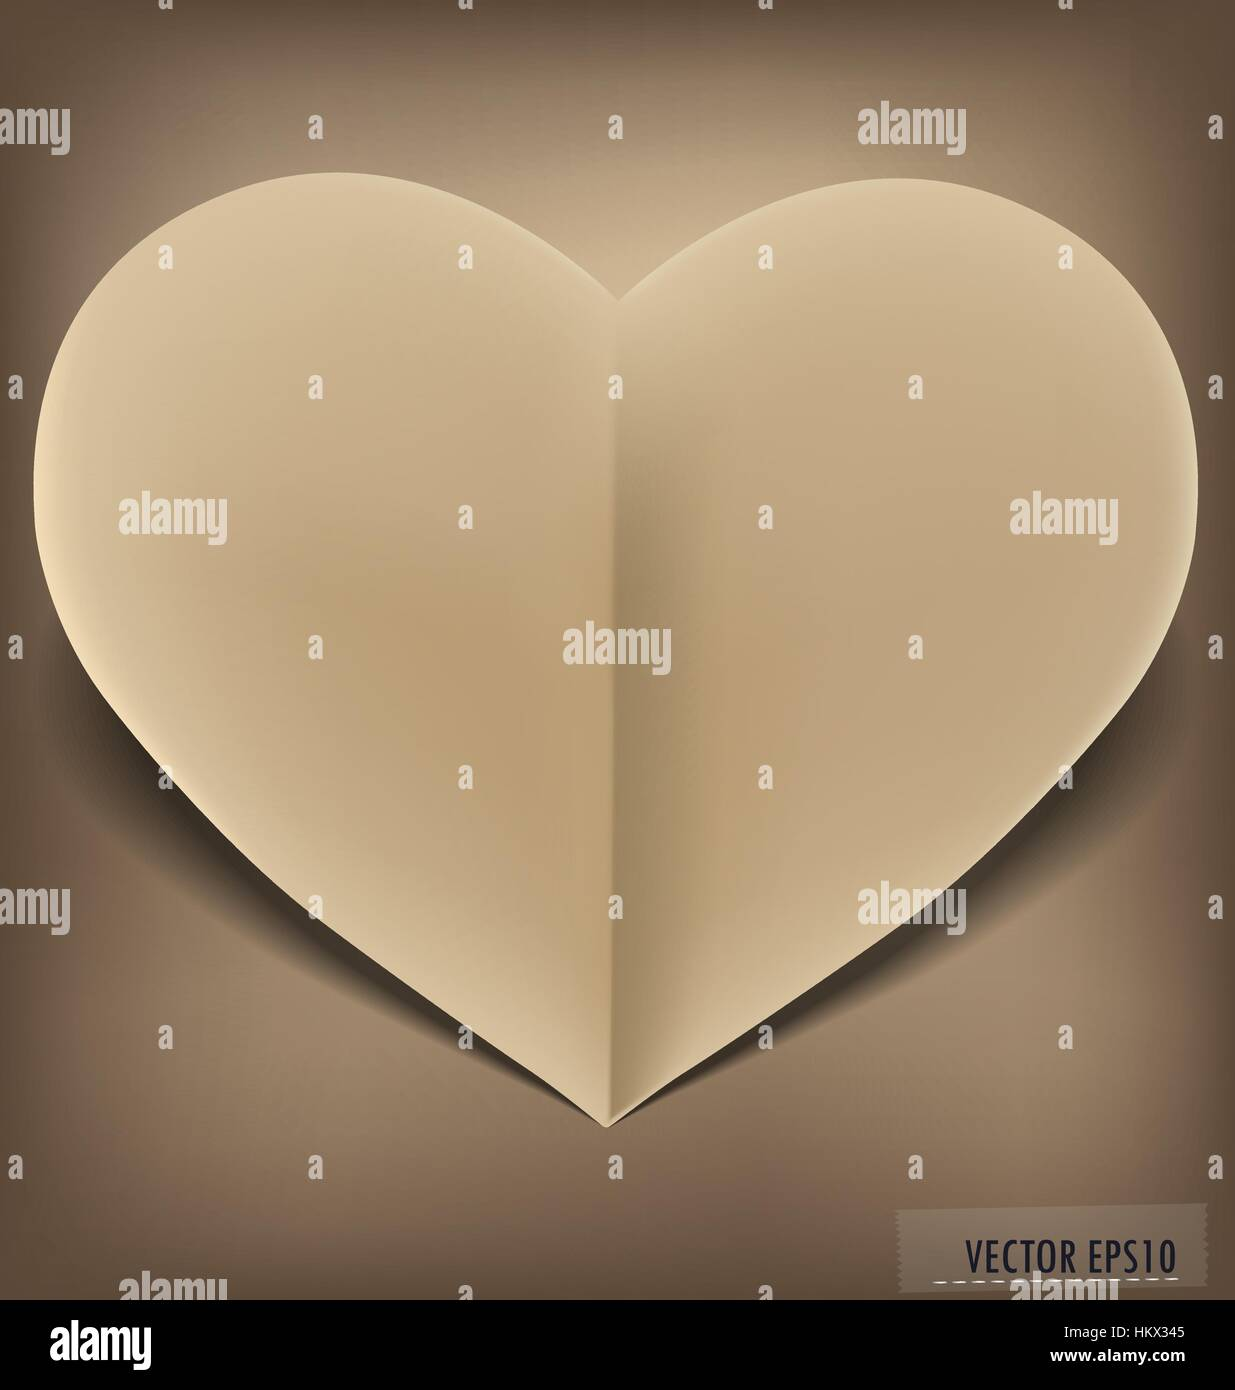 Heart Shape Symbol Stock Vector Images Alamy